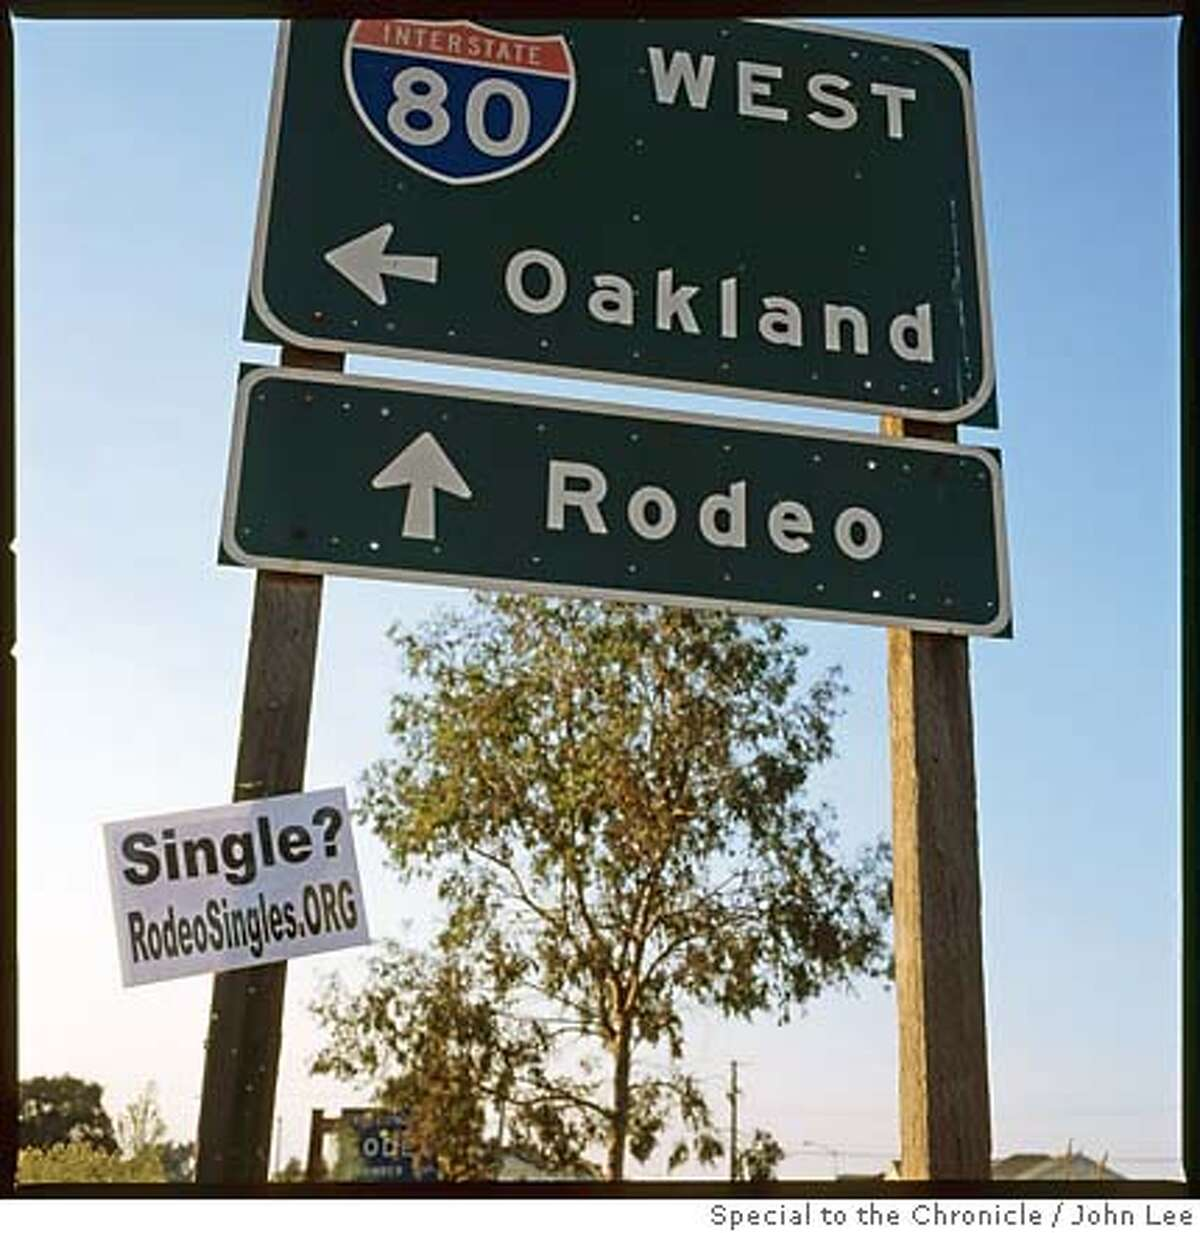 RODEO, CALIF - SEPT 11: Sign pointing to Rodeo off of the Willow exit from I-80. By JOHN LEE/